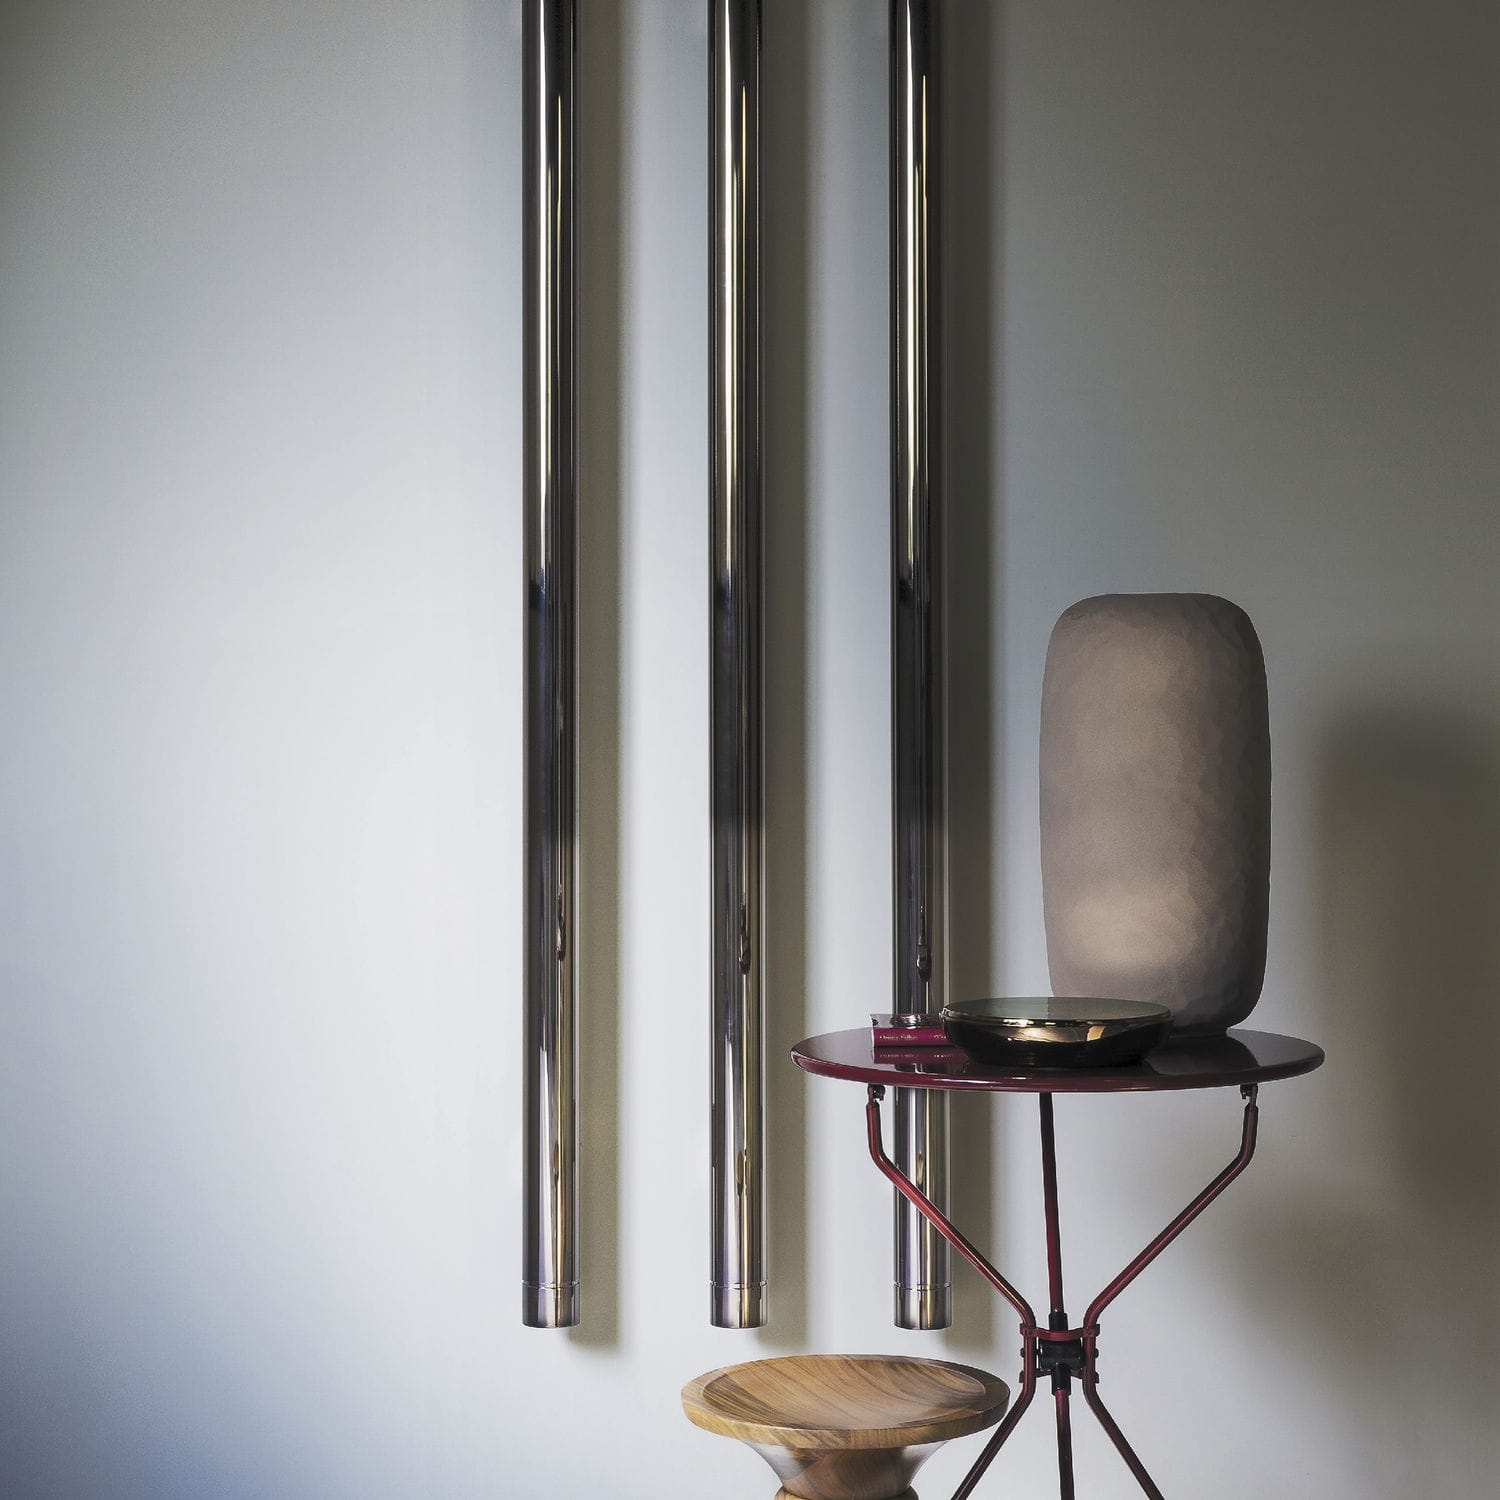 Hot water radiator / electric / aluminum / contemporary - ELEMENTS ...